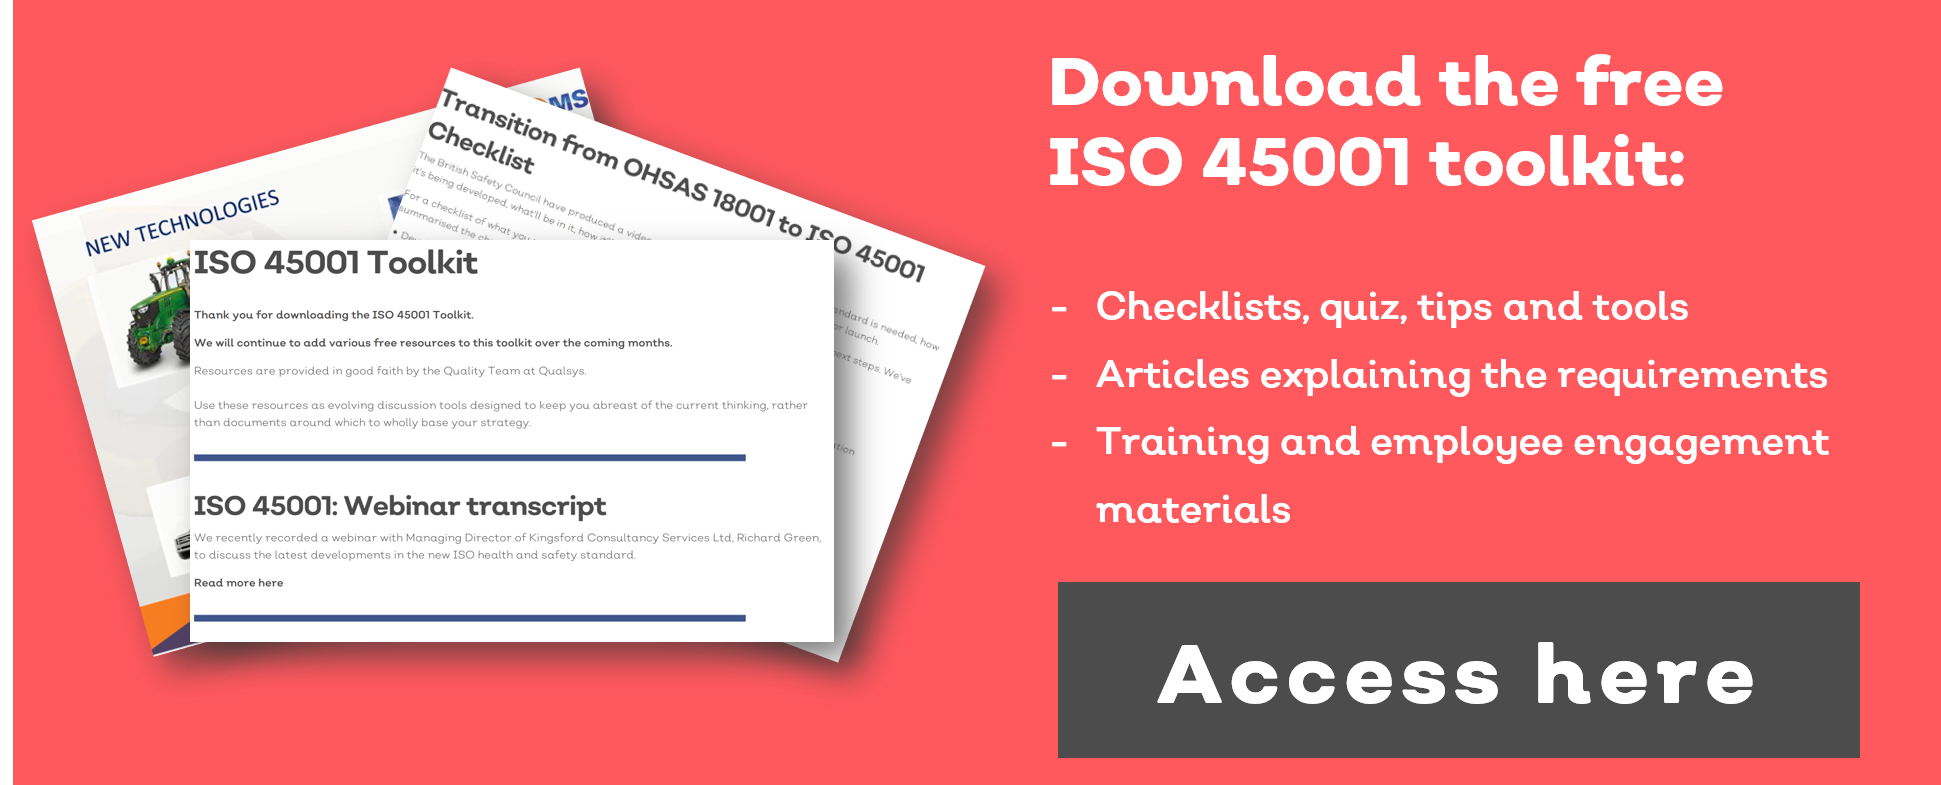 ISO 45001 clauses reviewed